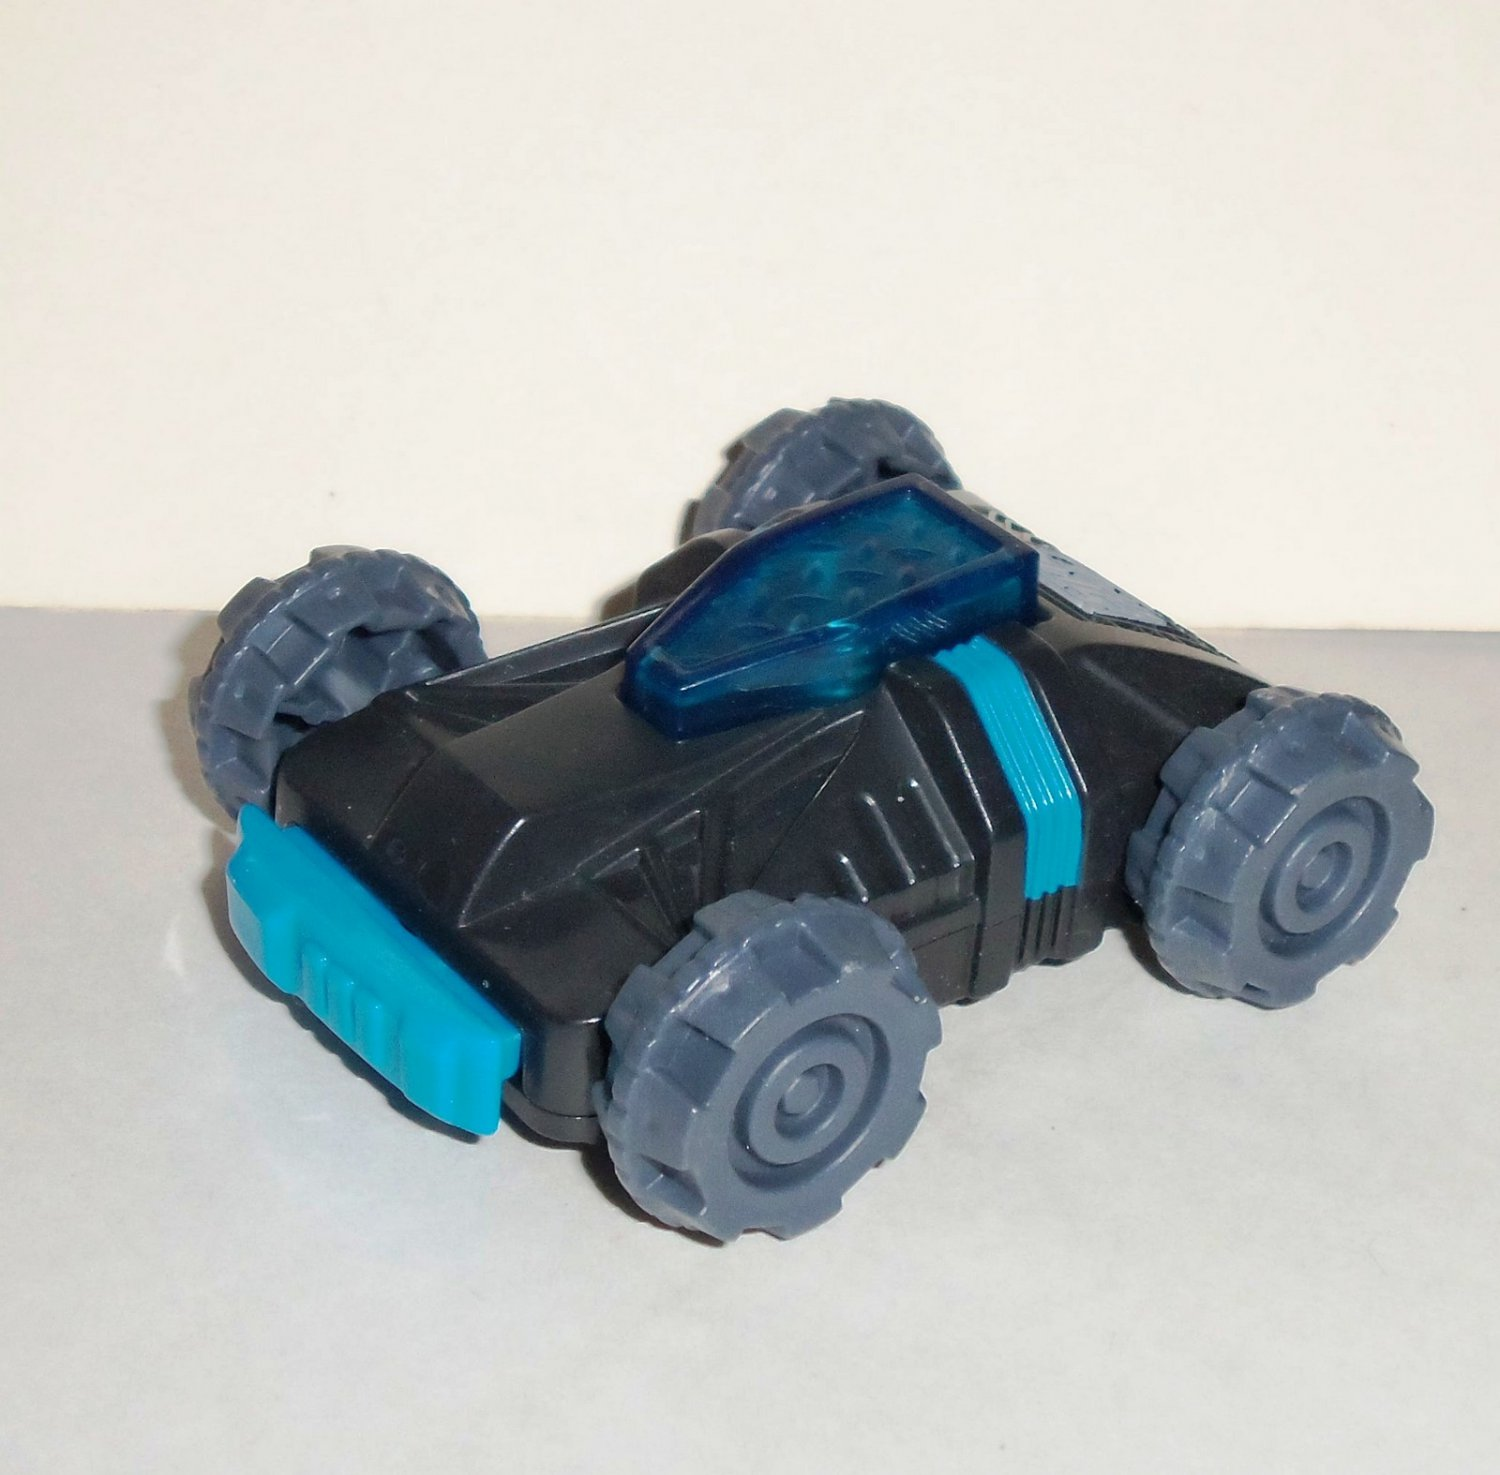 Gears Used In Toys : Mcdonald s spy gear alert vehicle happy meal toy